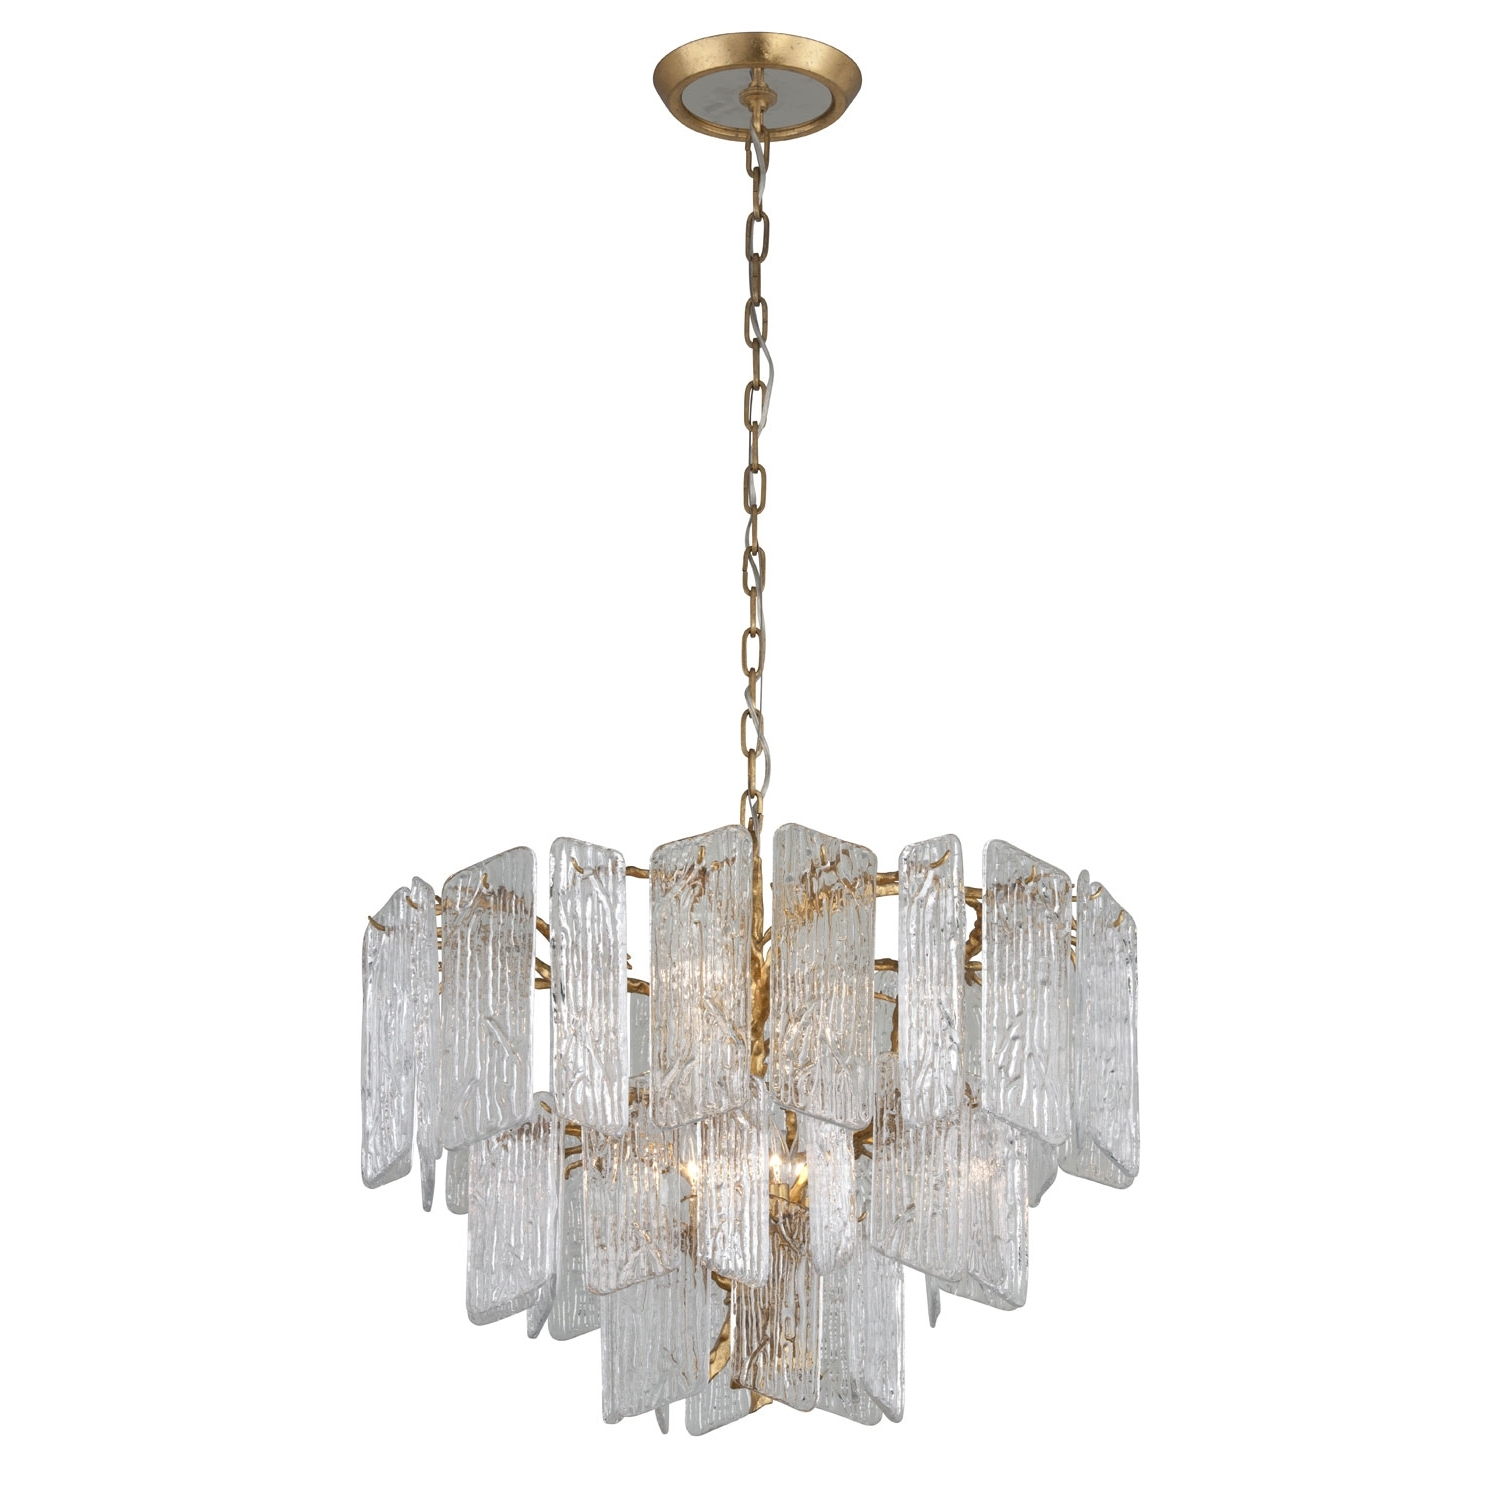 Art Deco Chandelier Throughout Fashionable Art Deco Chandeliers & Lighting (View 18 of 20)